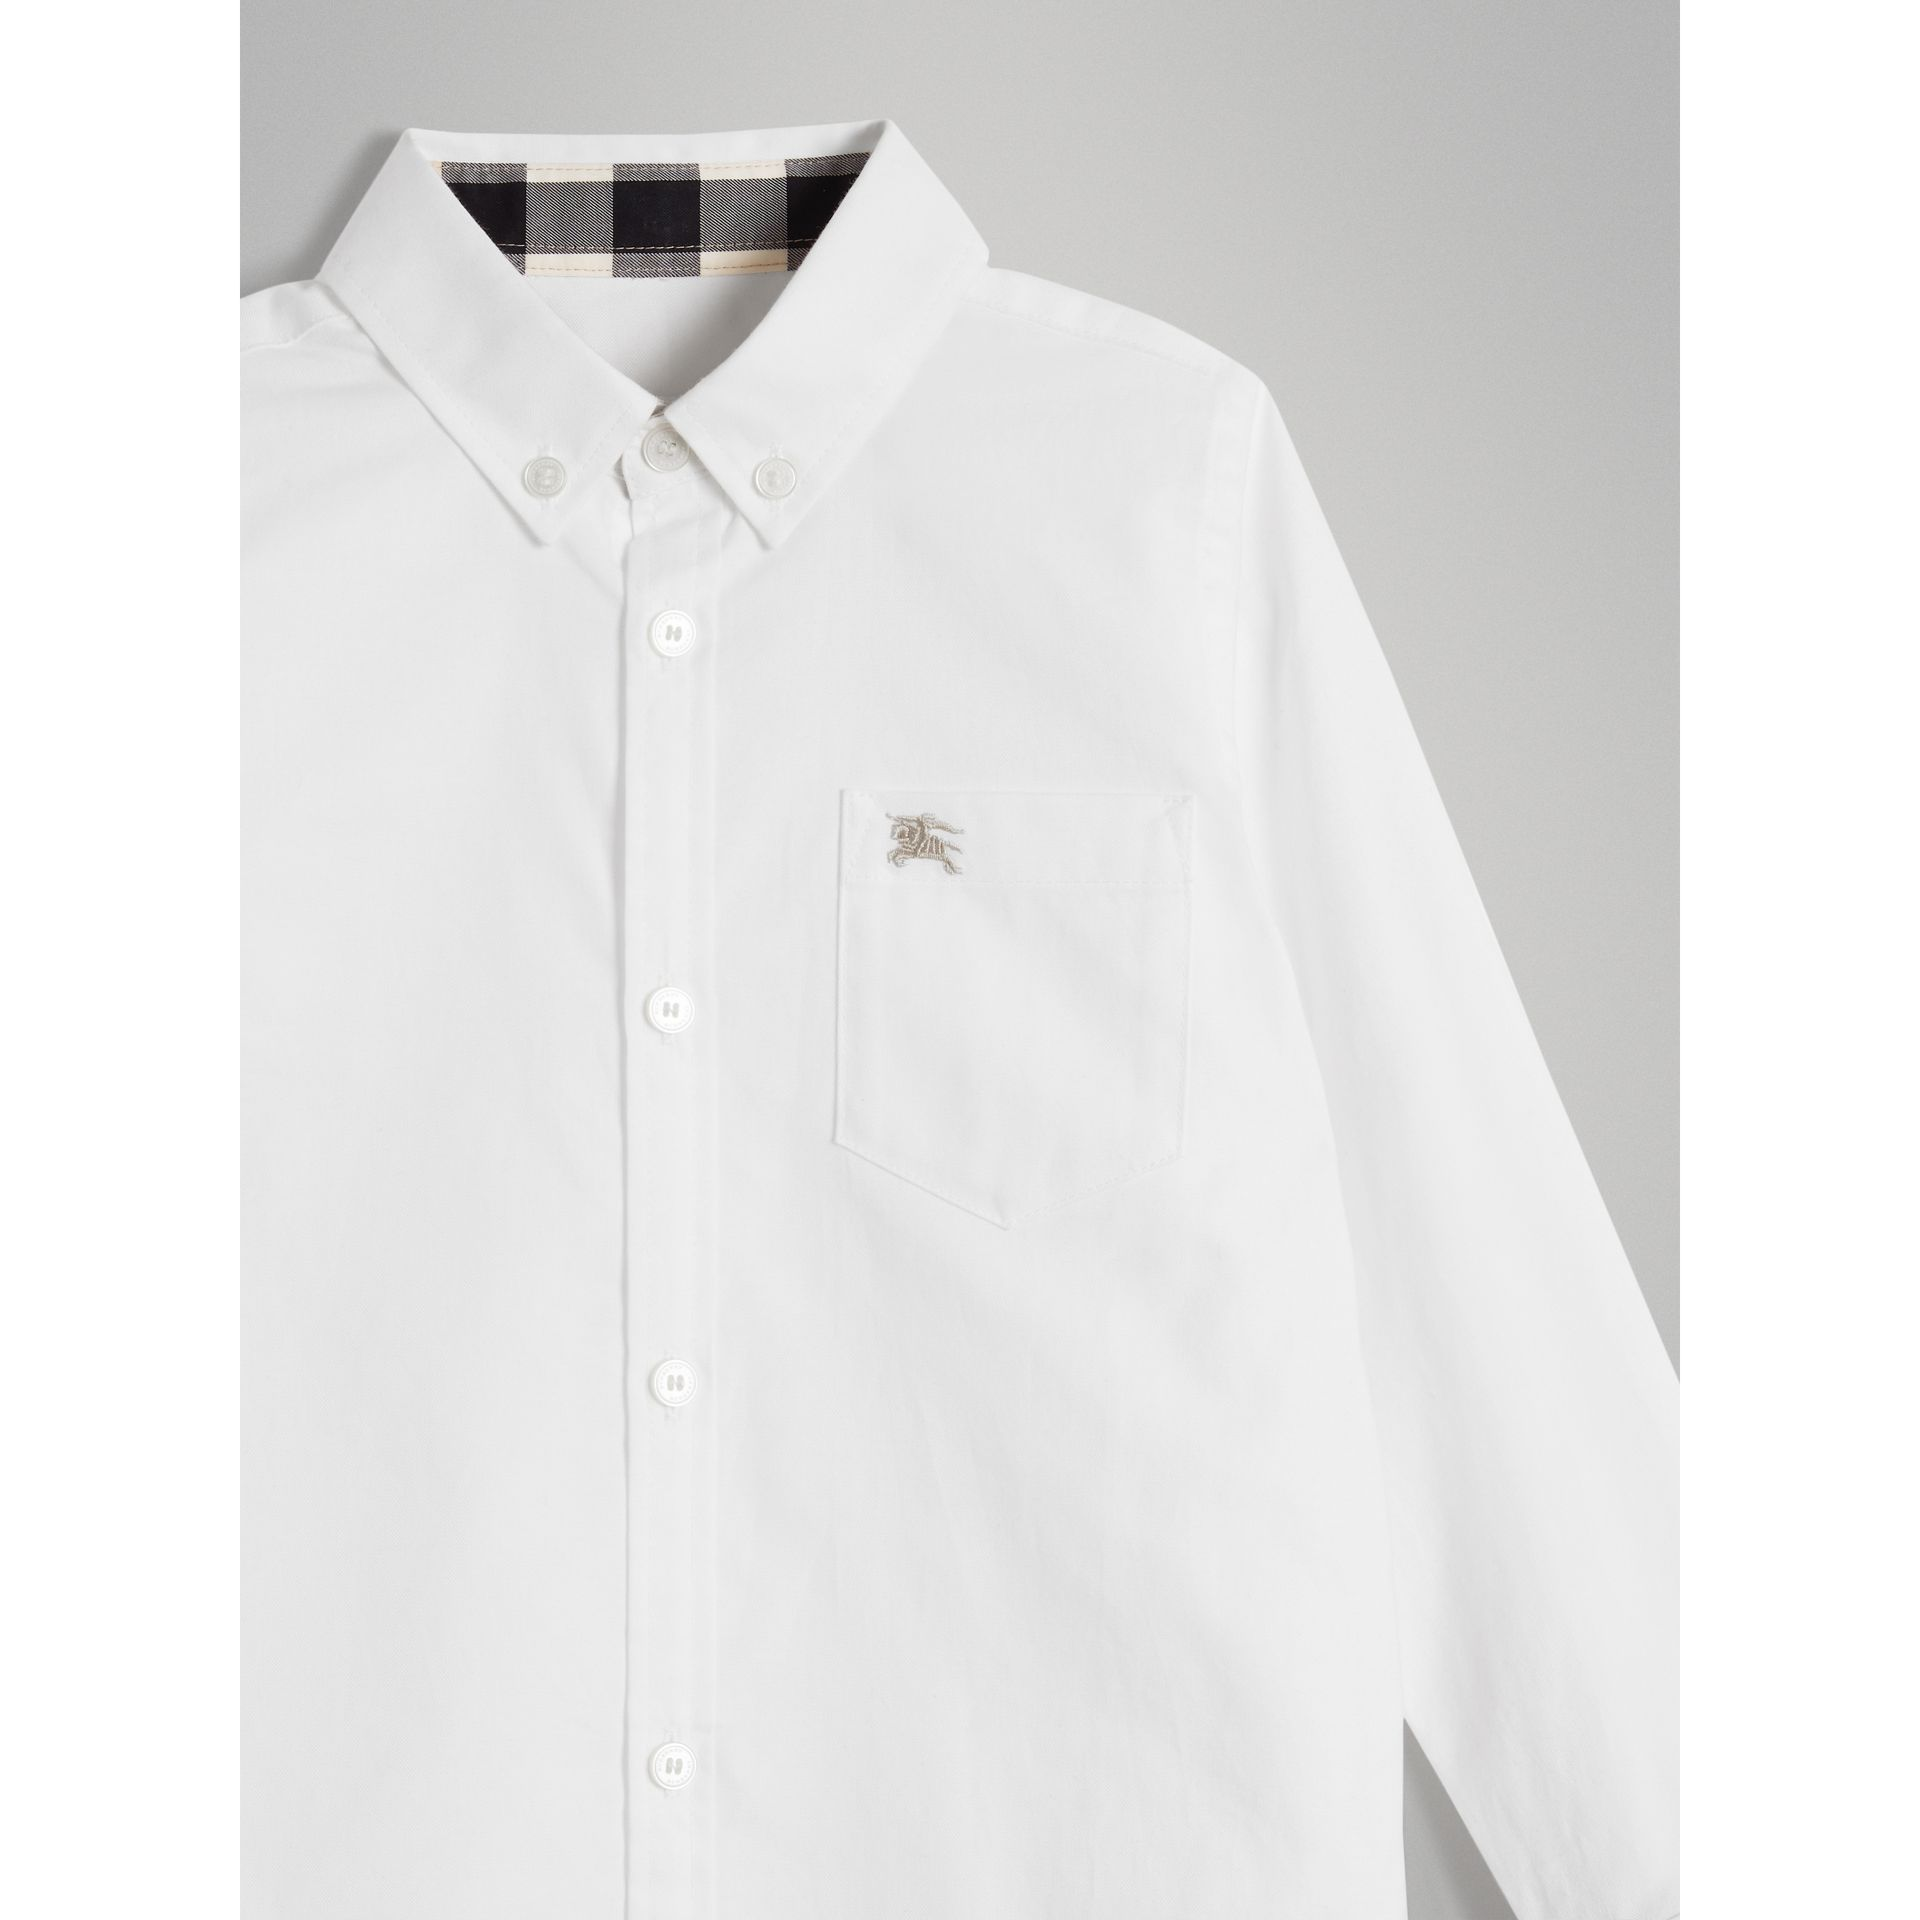 Cotton Button-down Collar Shirt in White | Burberry - gallery image 4